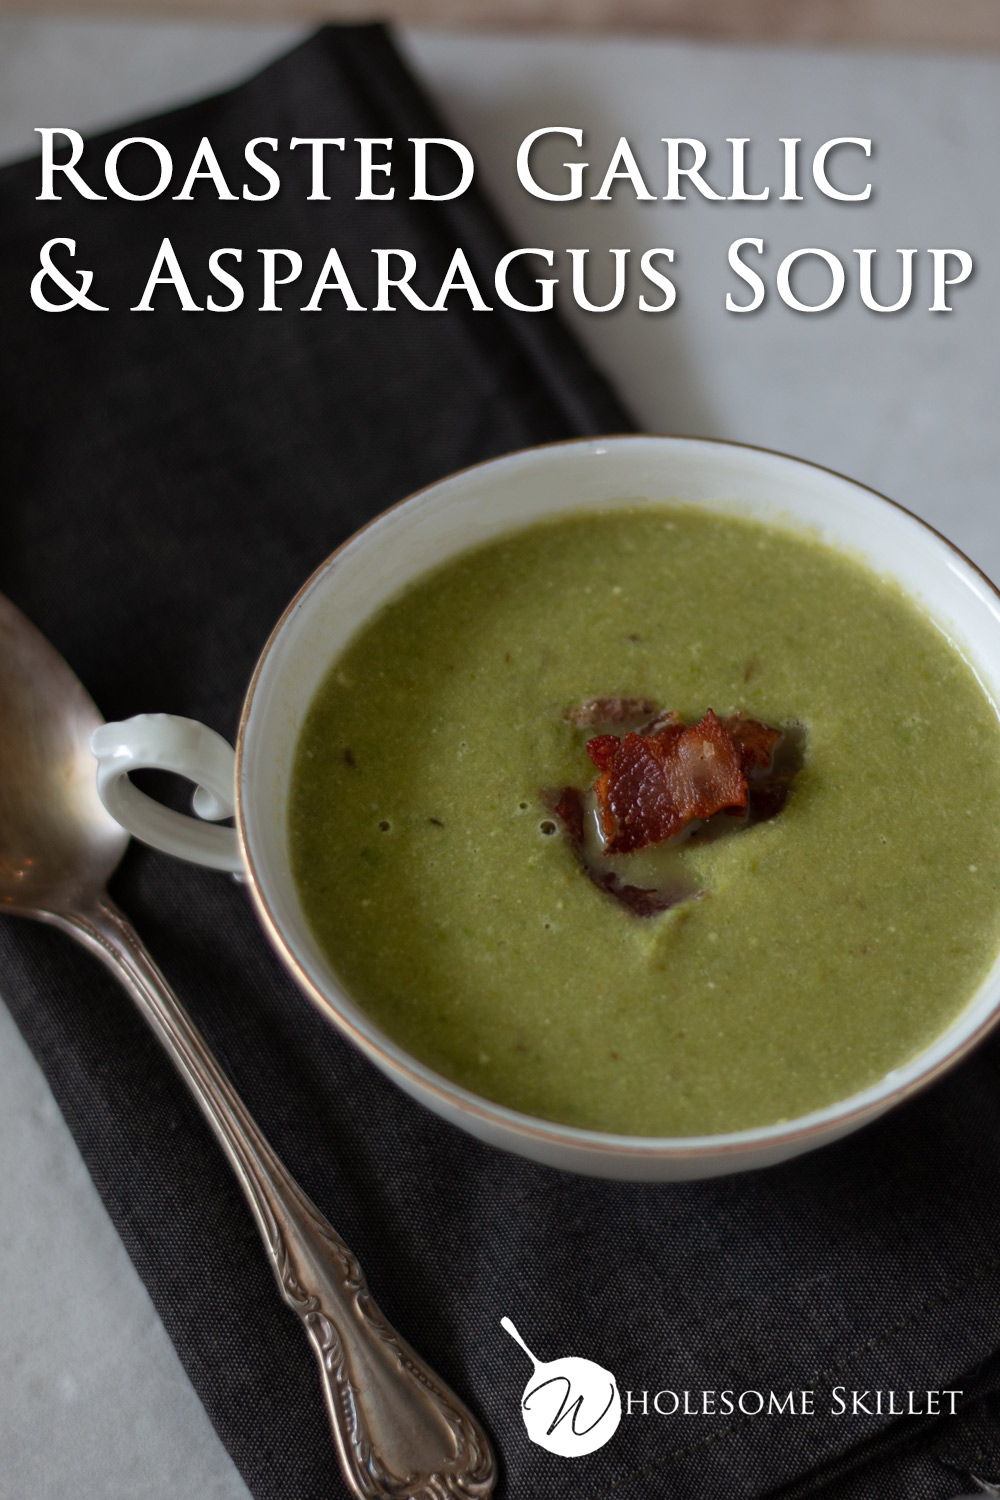 Roasted Garlic and Asparagus Soup - Enjoy a creamy soup, rich with the flavor of roasted asparagus and garlic.